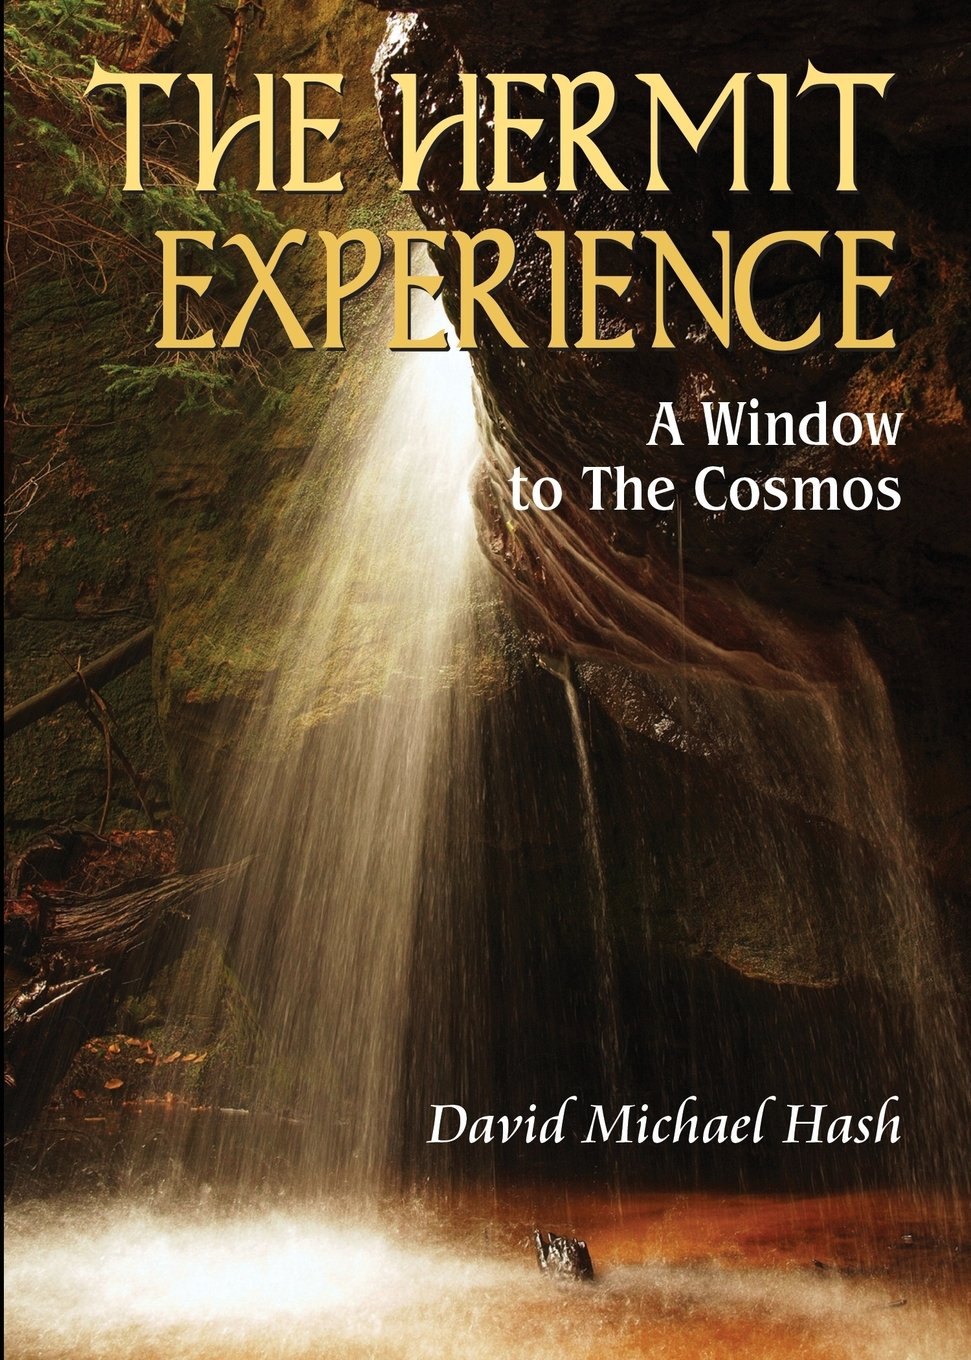 The Hermit Experience: A Window to the Cosmos (Enlightenment) pdf